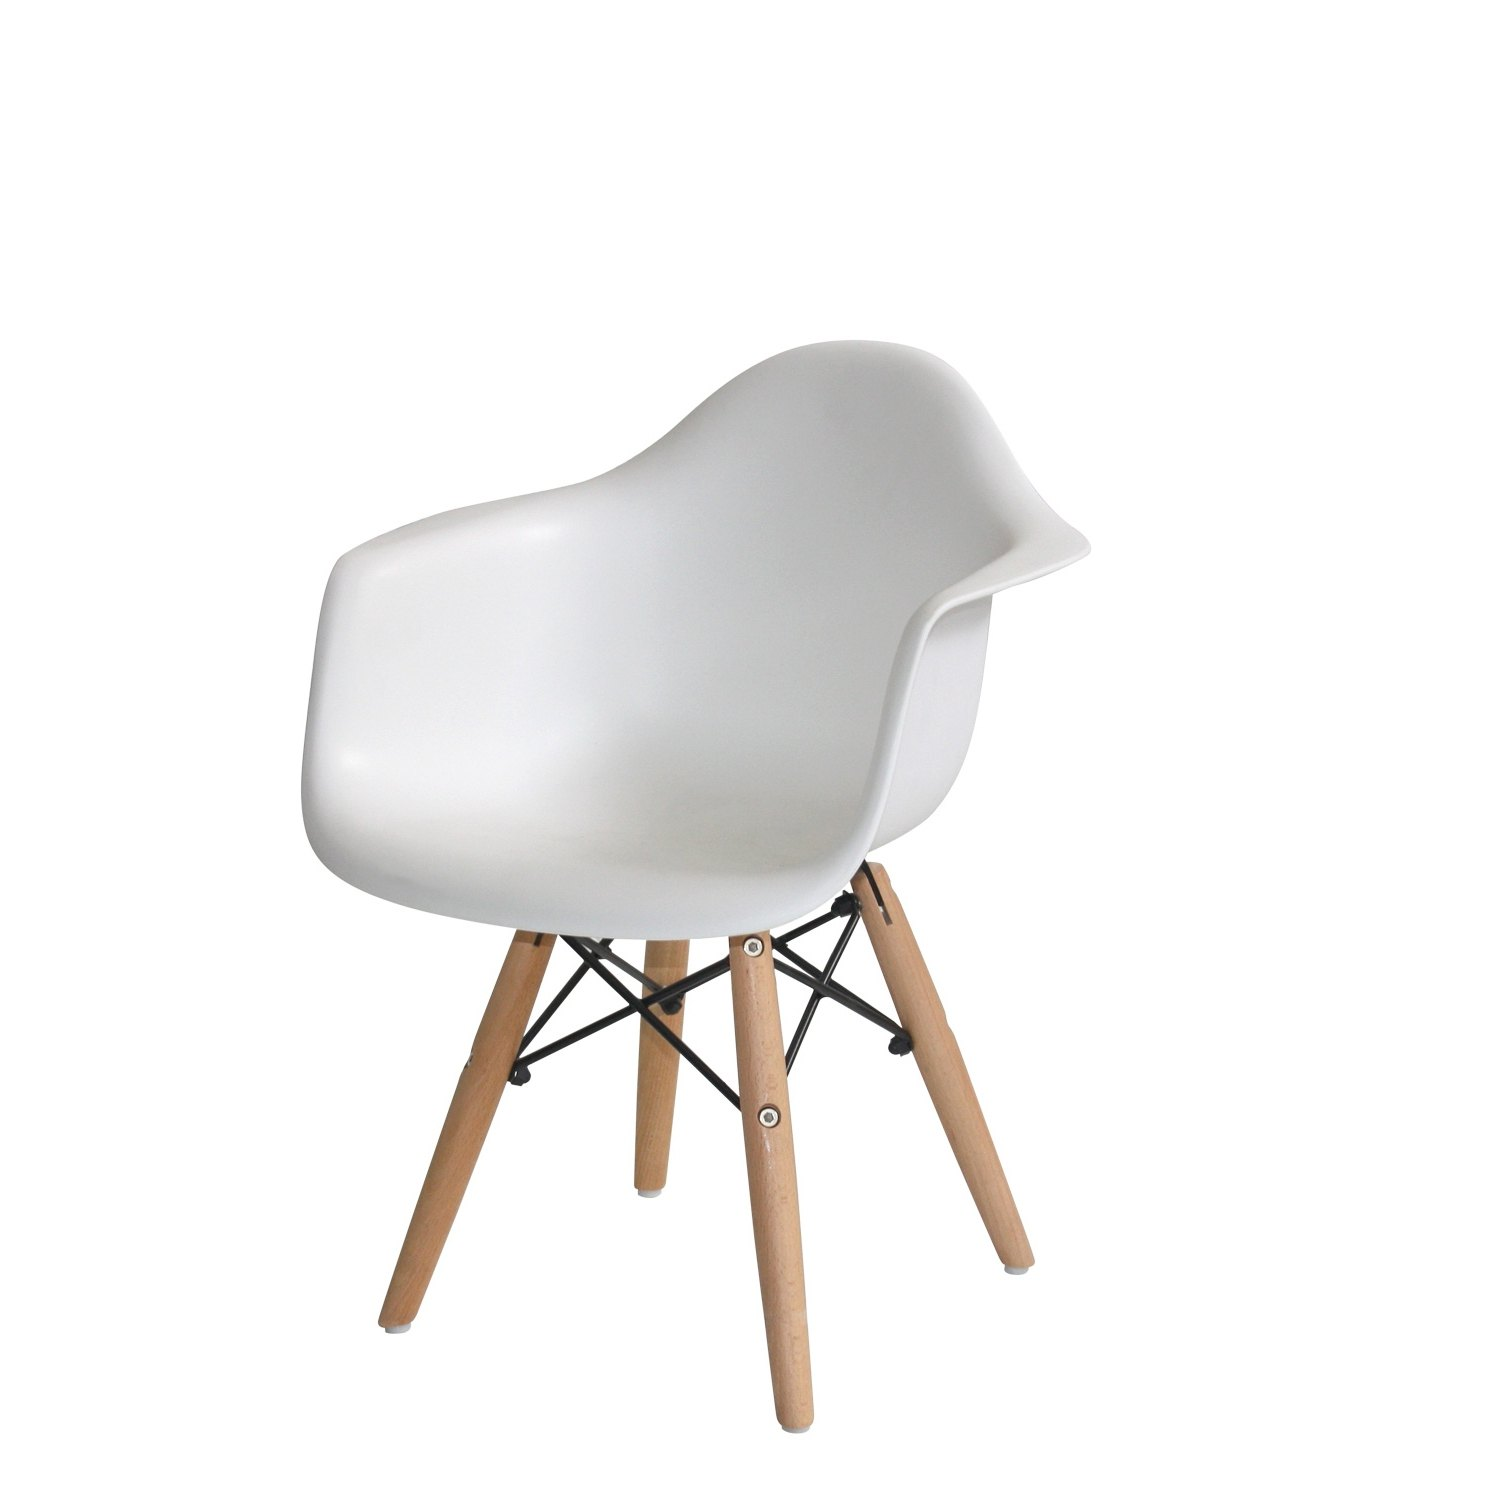 Comprare online poltrona baby tower wood econ mica in 5 for Comprare sedie economiche online